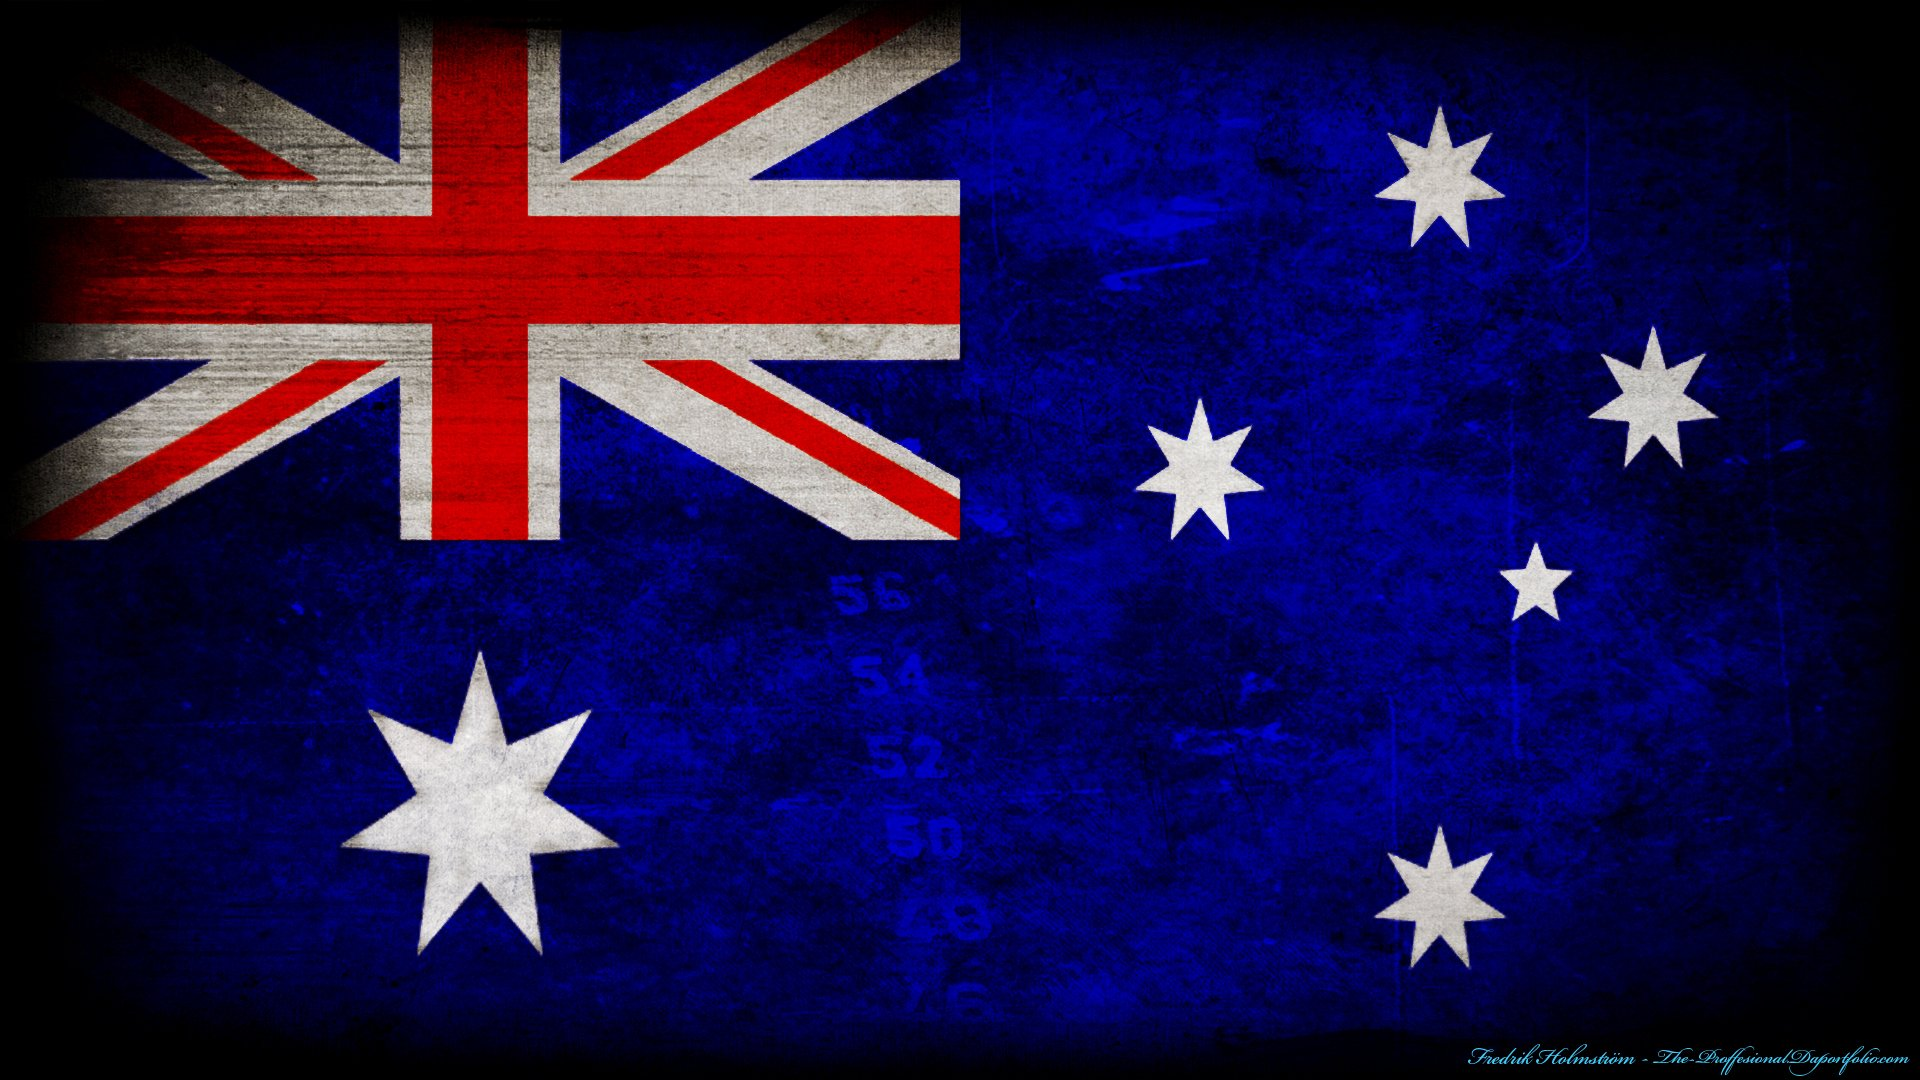 13 Flag Of Australia HD Wallpapers Background Images   Wallpaper 1920x1080